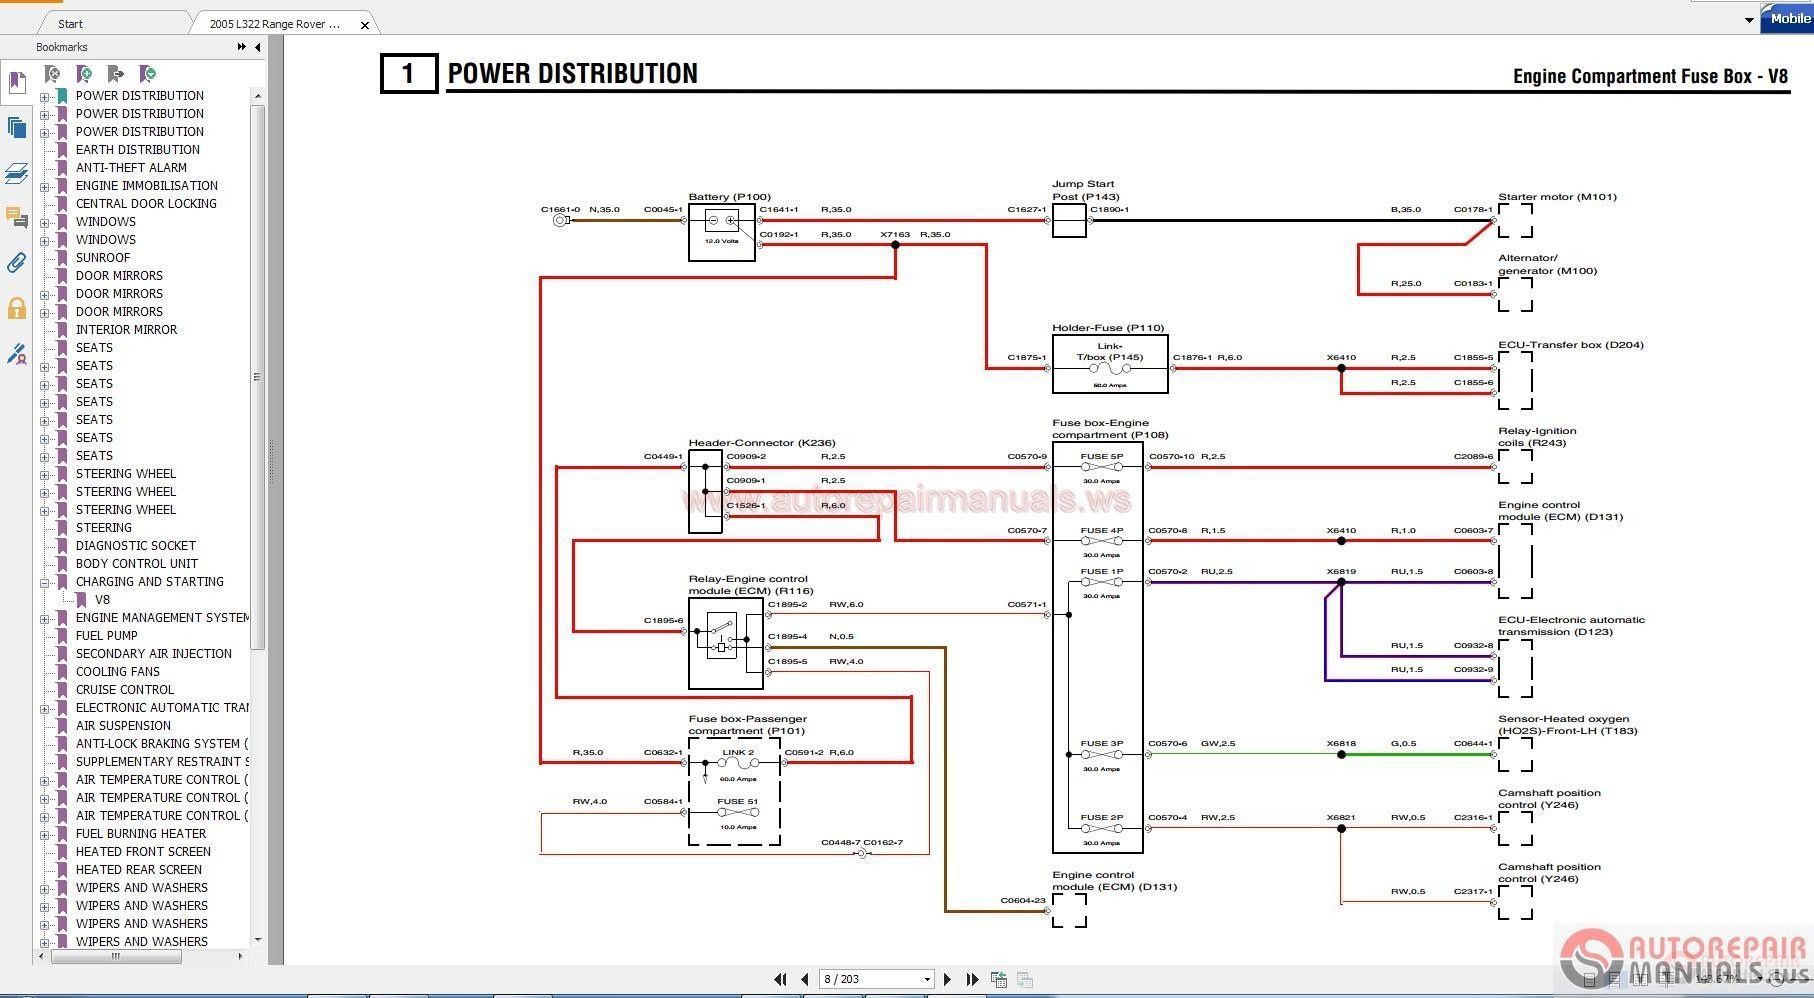 Electrical Wiring Diagram Of Motorcycle Http Bookingritzcarlton Info Electrical Wiring Diagram Of Mo Electrical Wiring Diagram Electrical Wiring Electricity